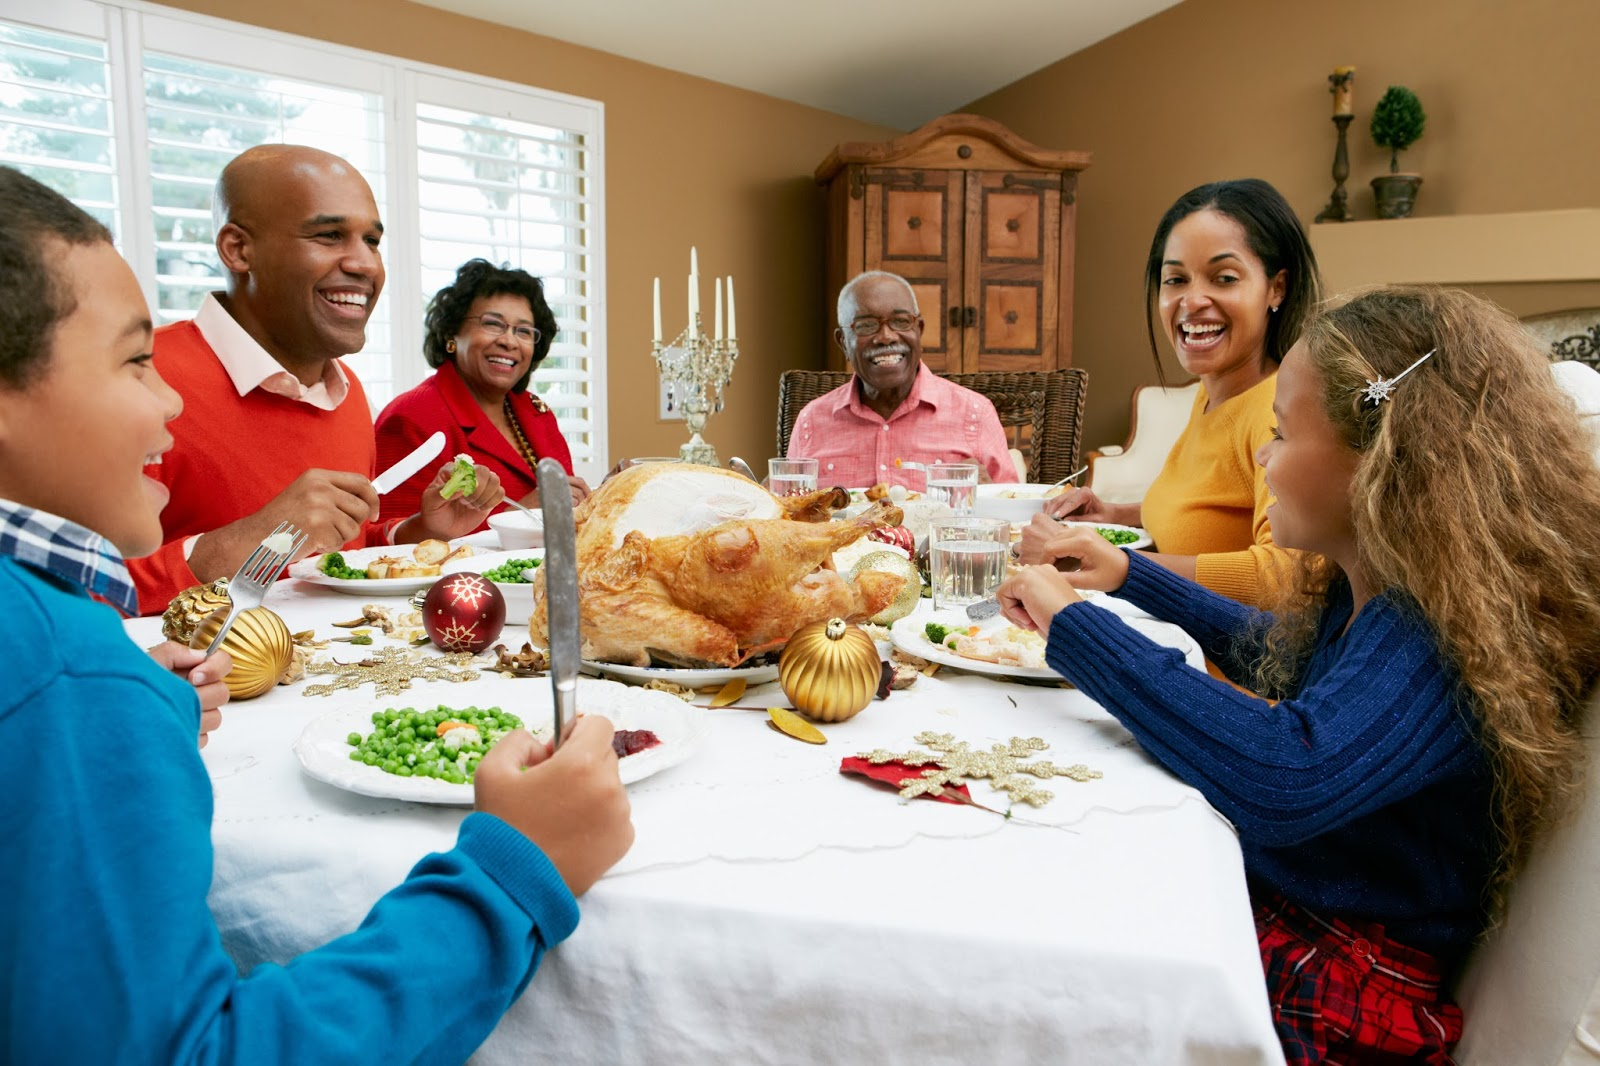 Thanksgiving Items Needed for Decorating and Entertaining